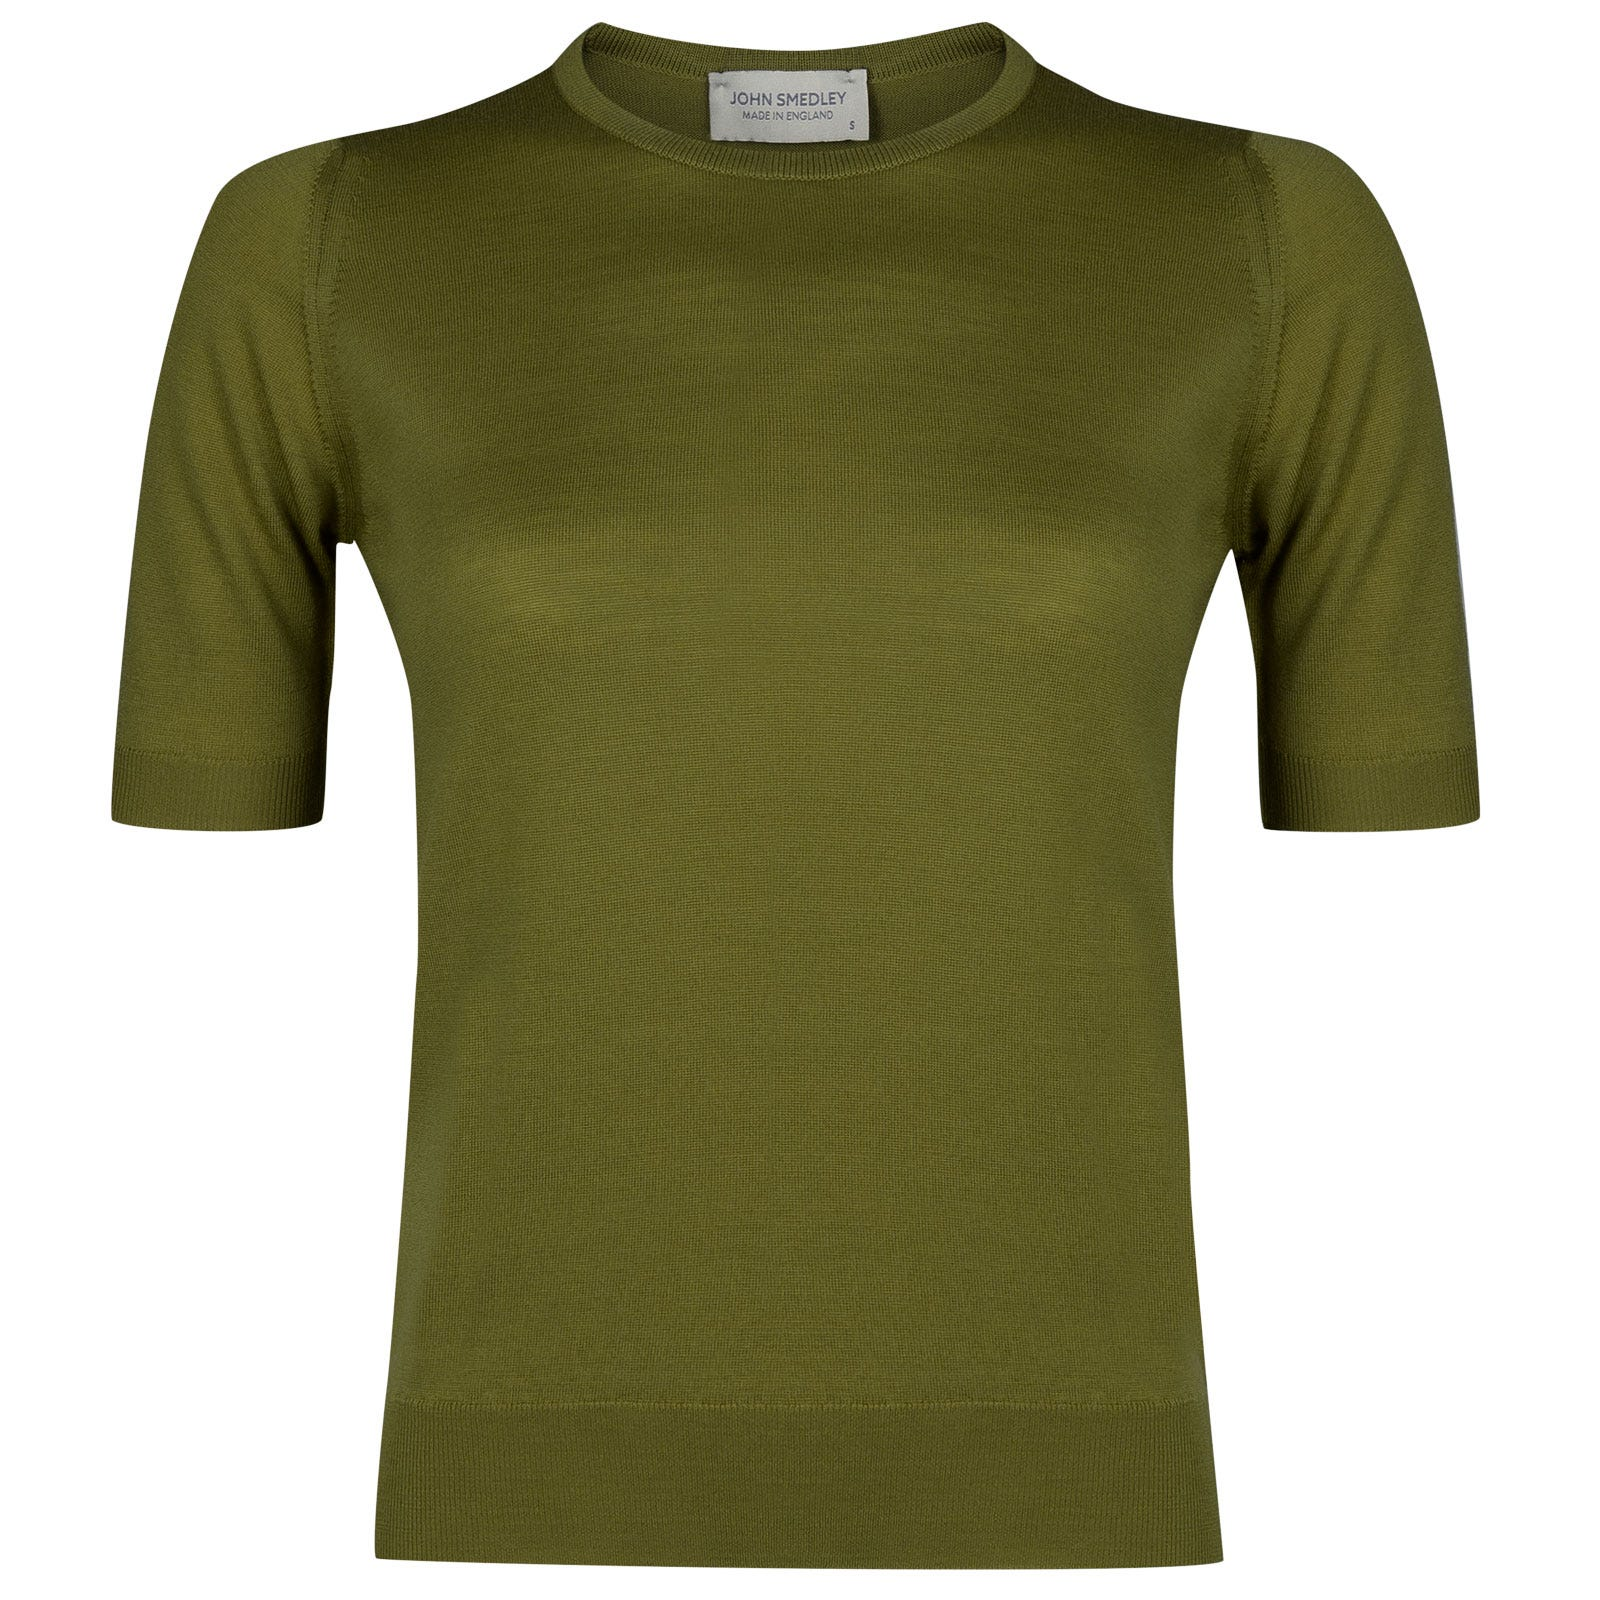 John Smedley trieste Merino Wool Sweater in Lumsdale Green-L